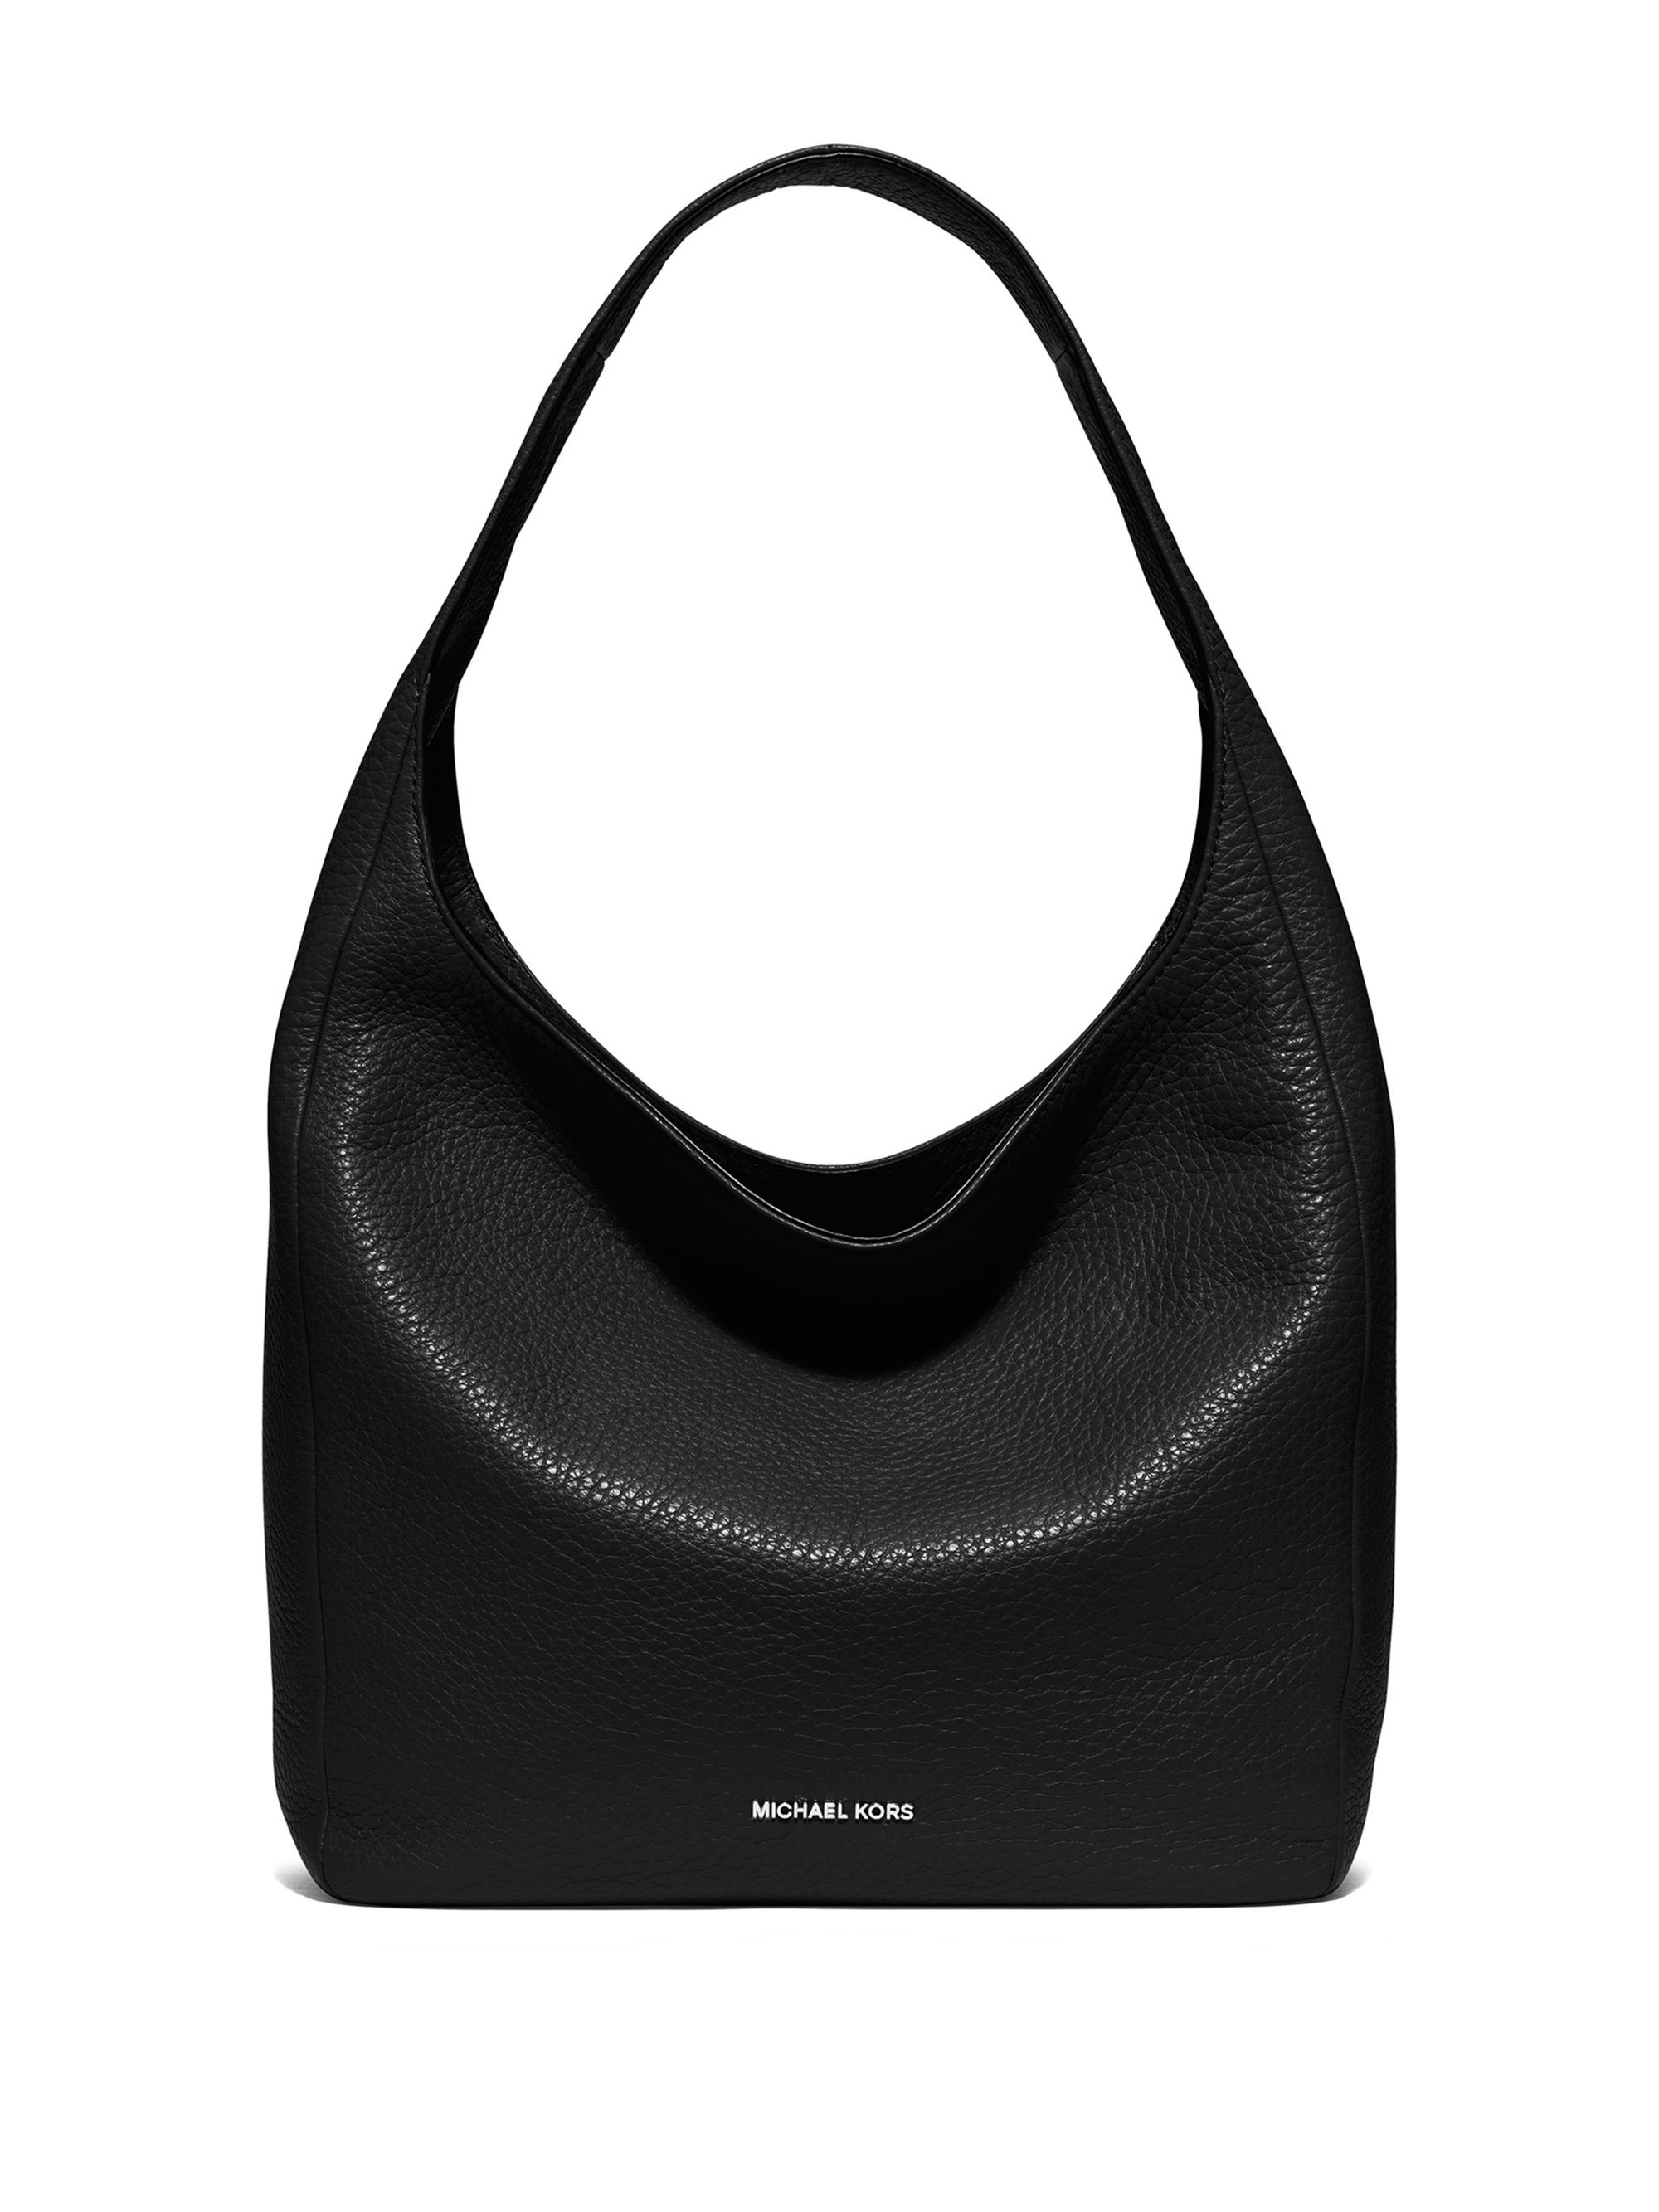 michael michael kors lena large leather hobo bag in black lyst. Black Bedroom Furniture Sets. Home Design Ideas